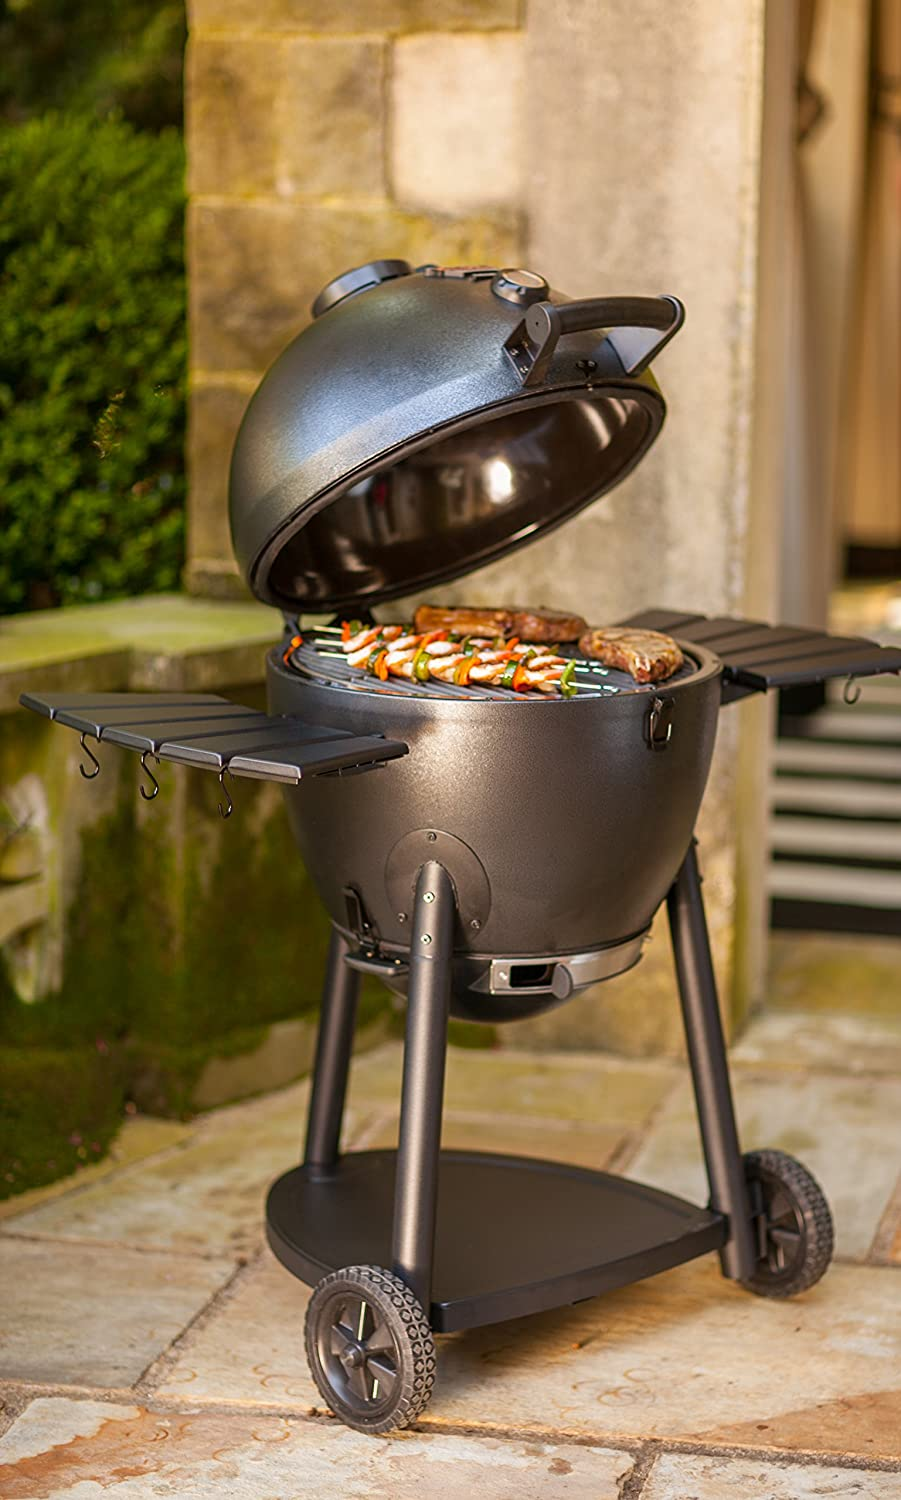 Amazon char griller 16620 akorn kamado kooker charcoal amazon char griller 16620 akorn kamado kooker charcoal barbecue grill and smoker black garden outdoor dailygadgetfo Images